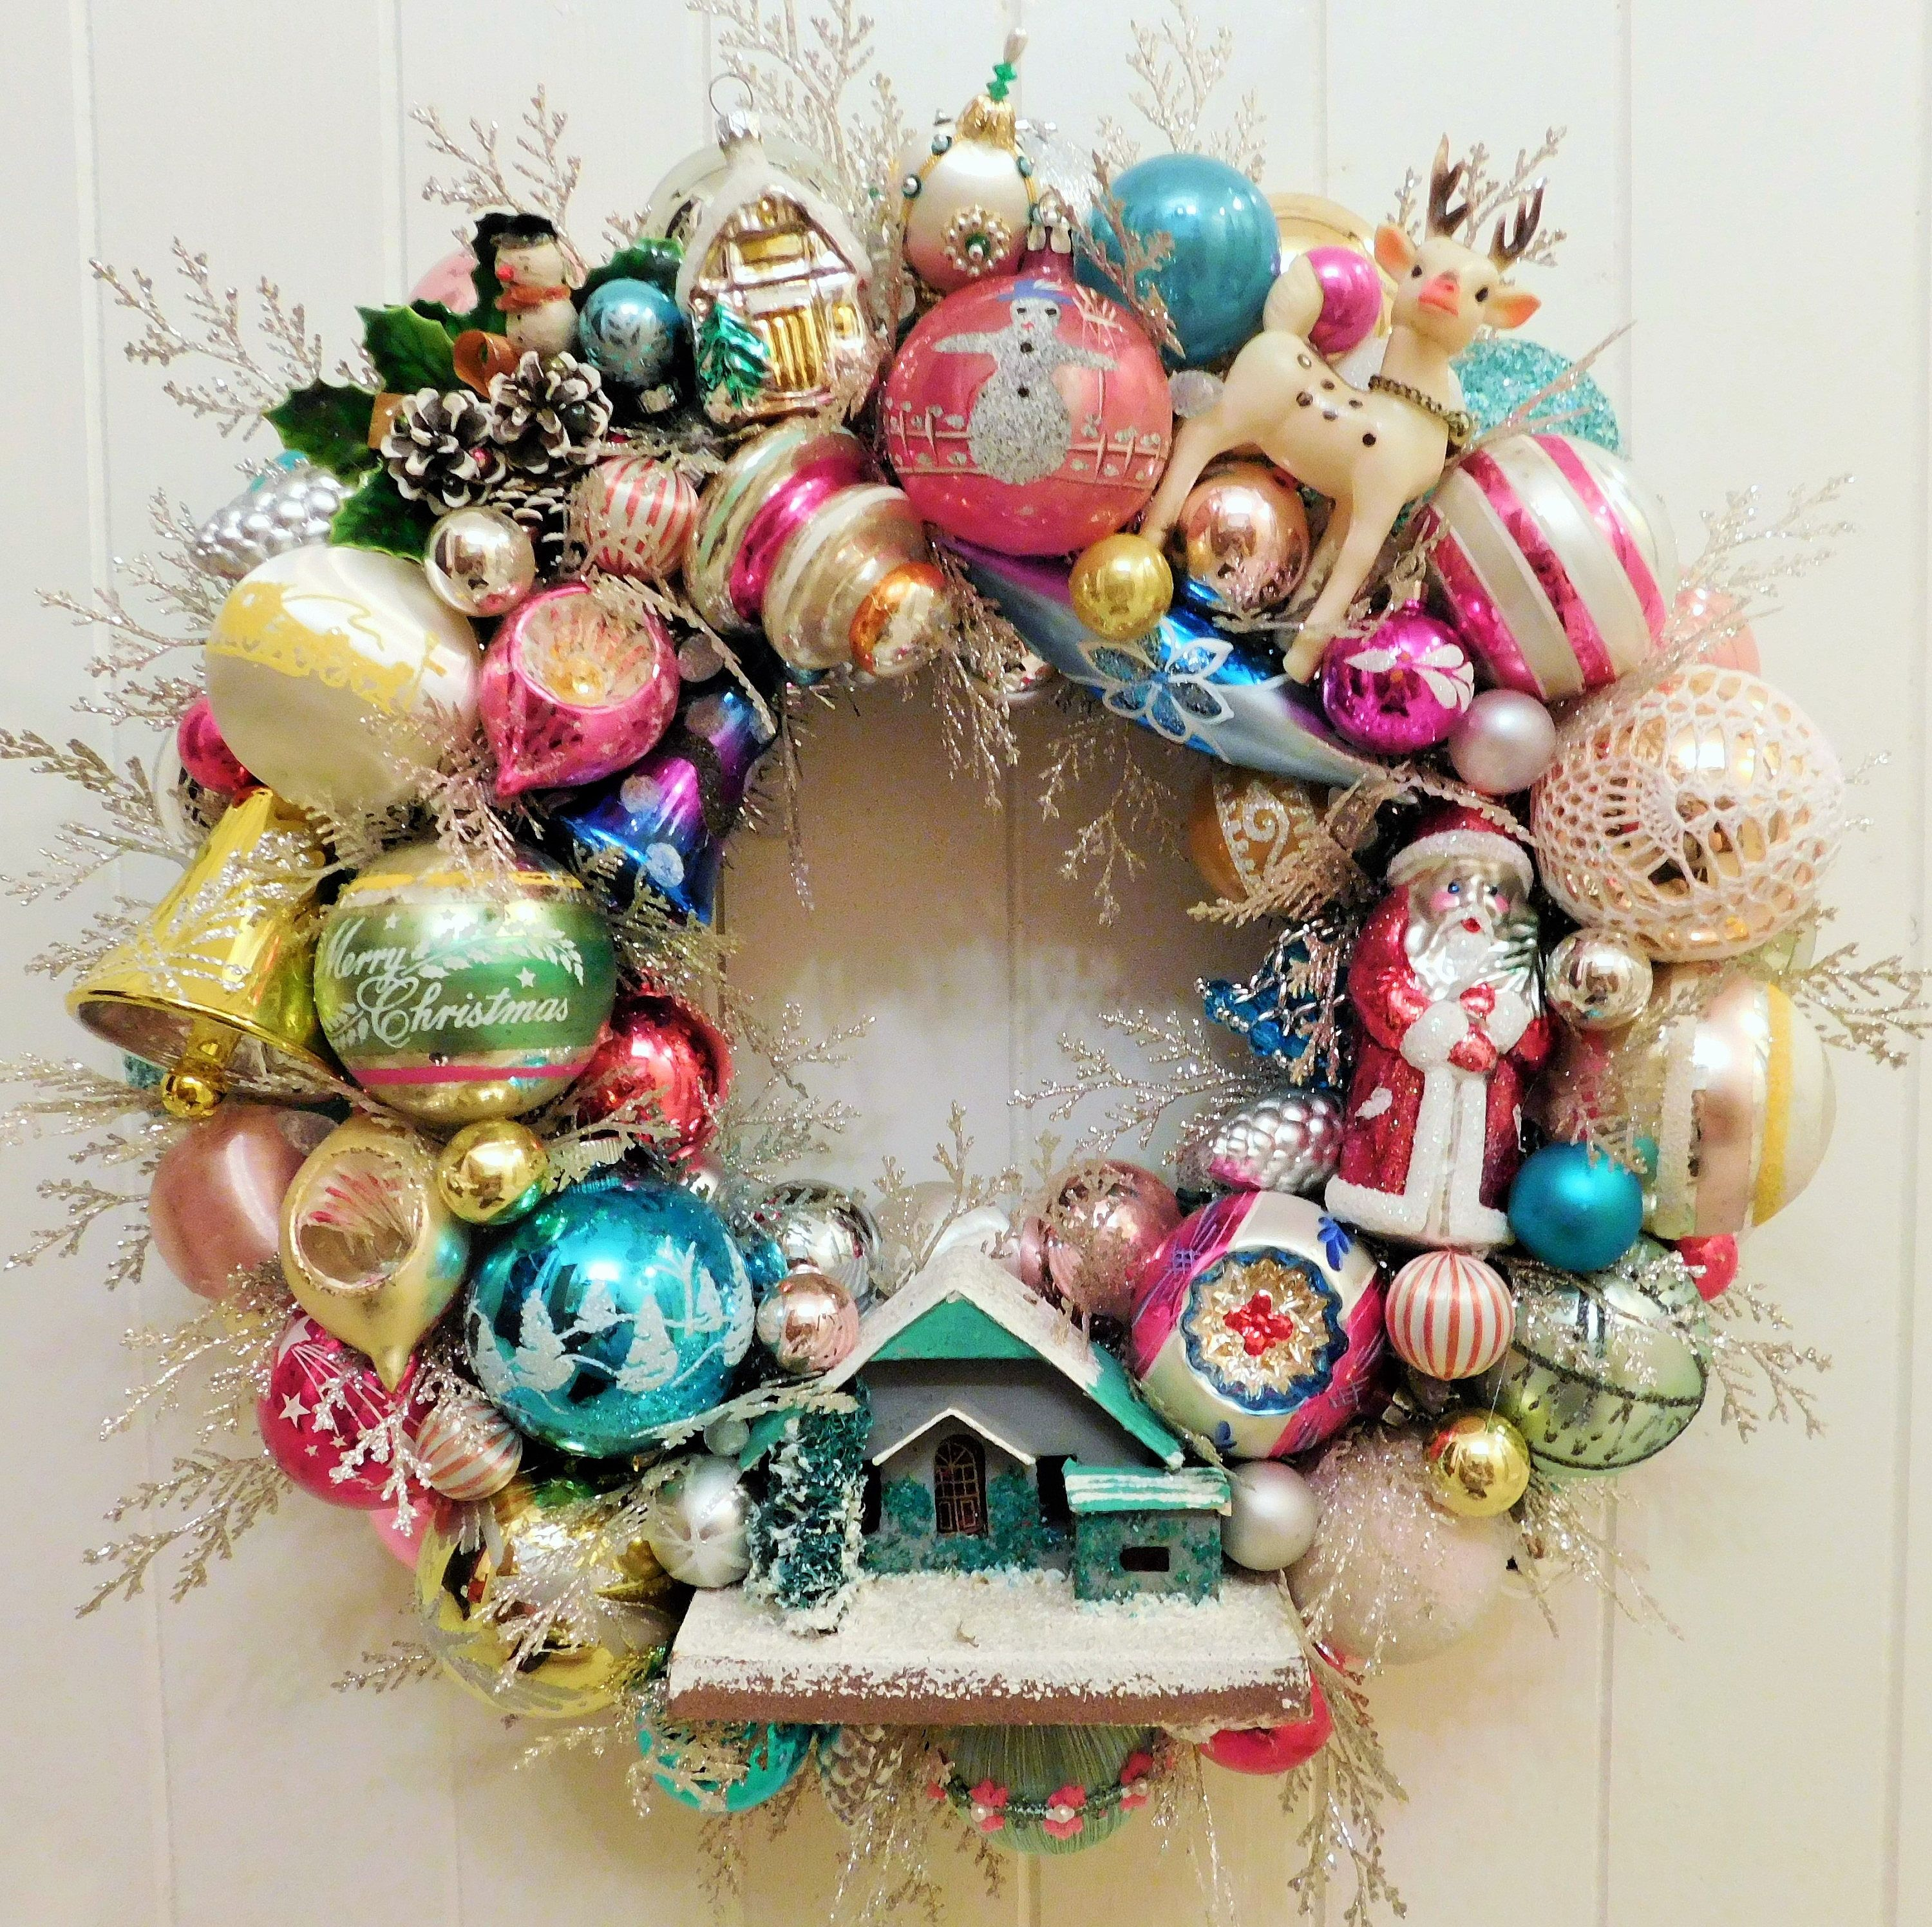 Discover Ideas About Housewarming Party Vintage Christmas Ornament Ball